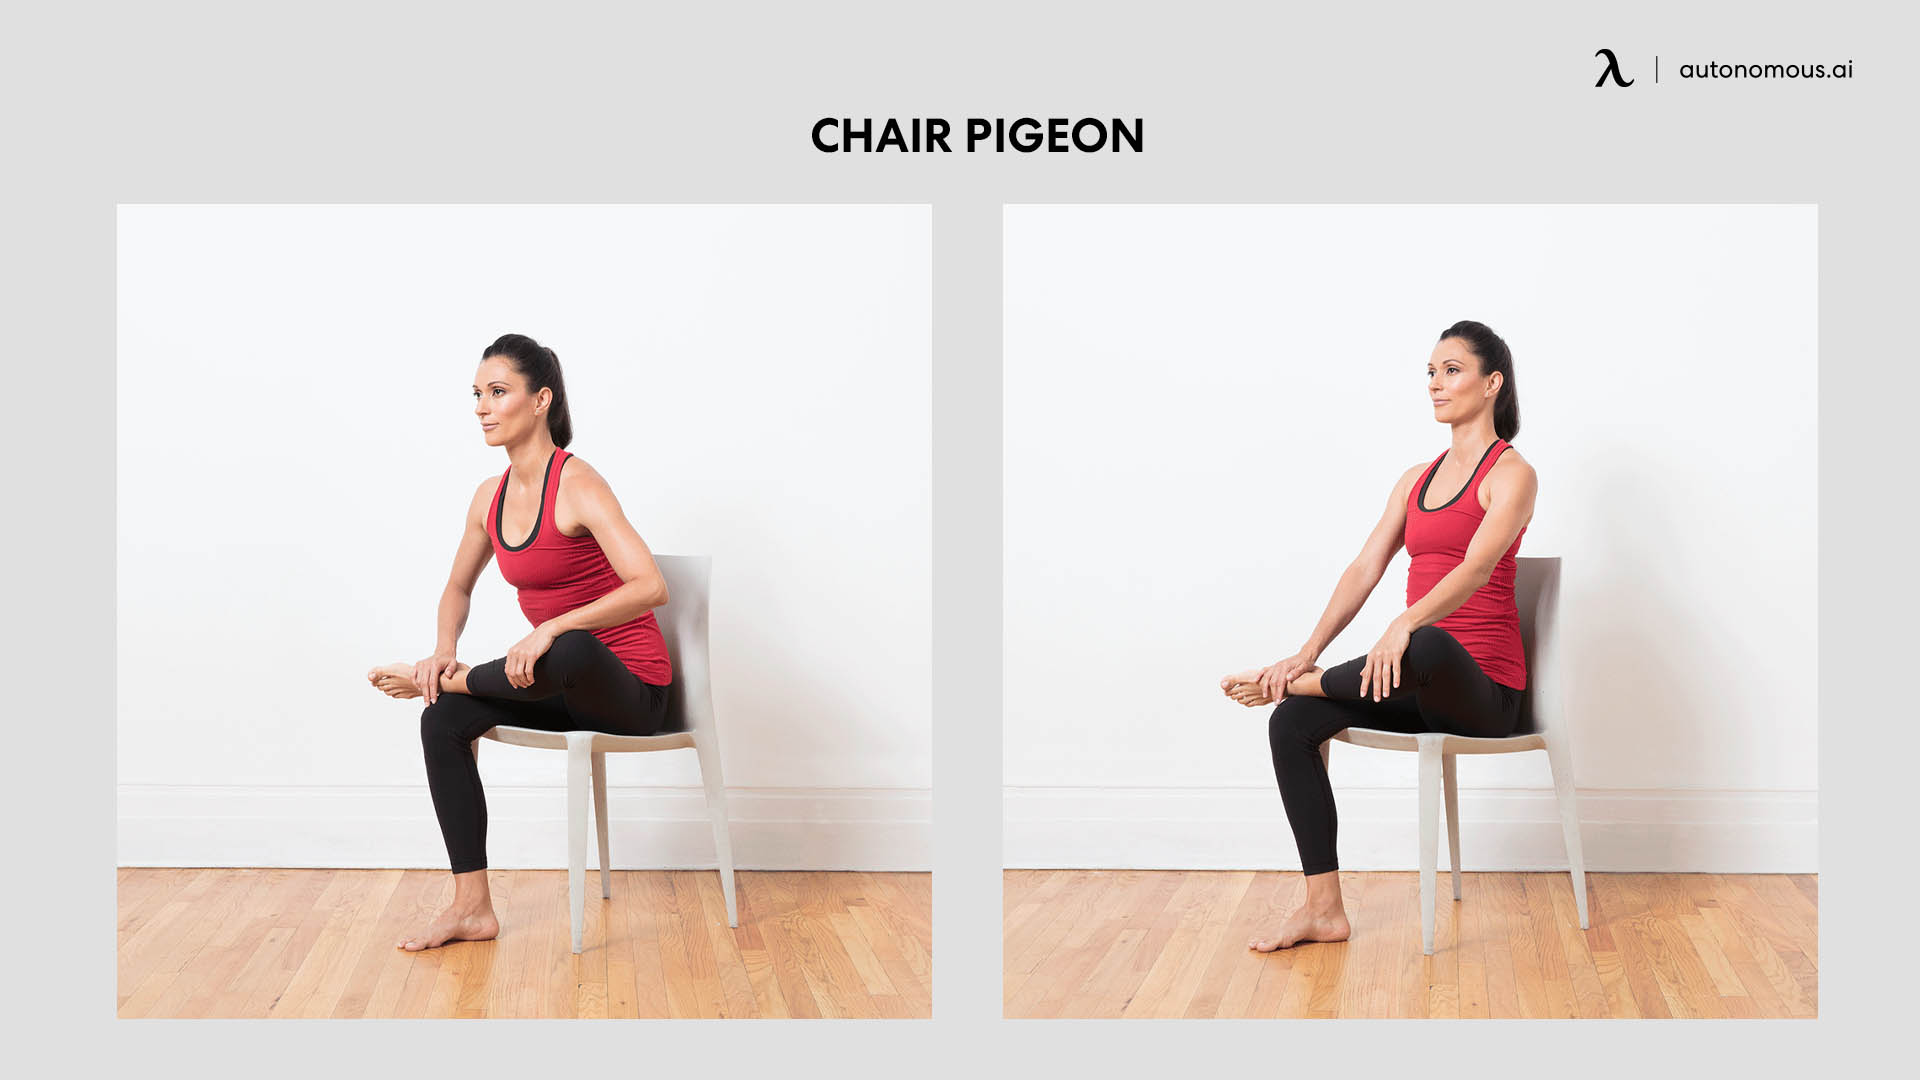 Chair pigeon poses